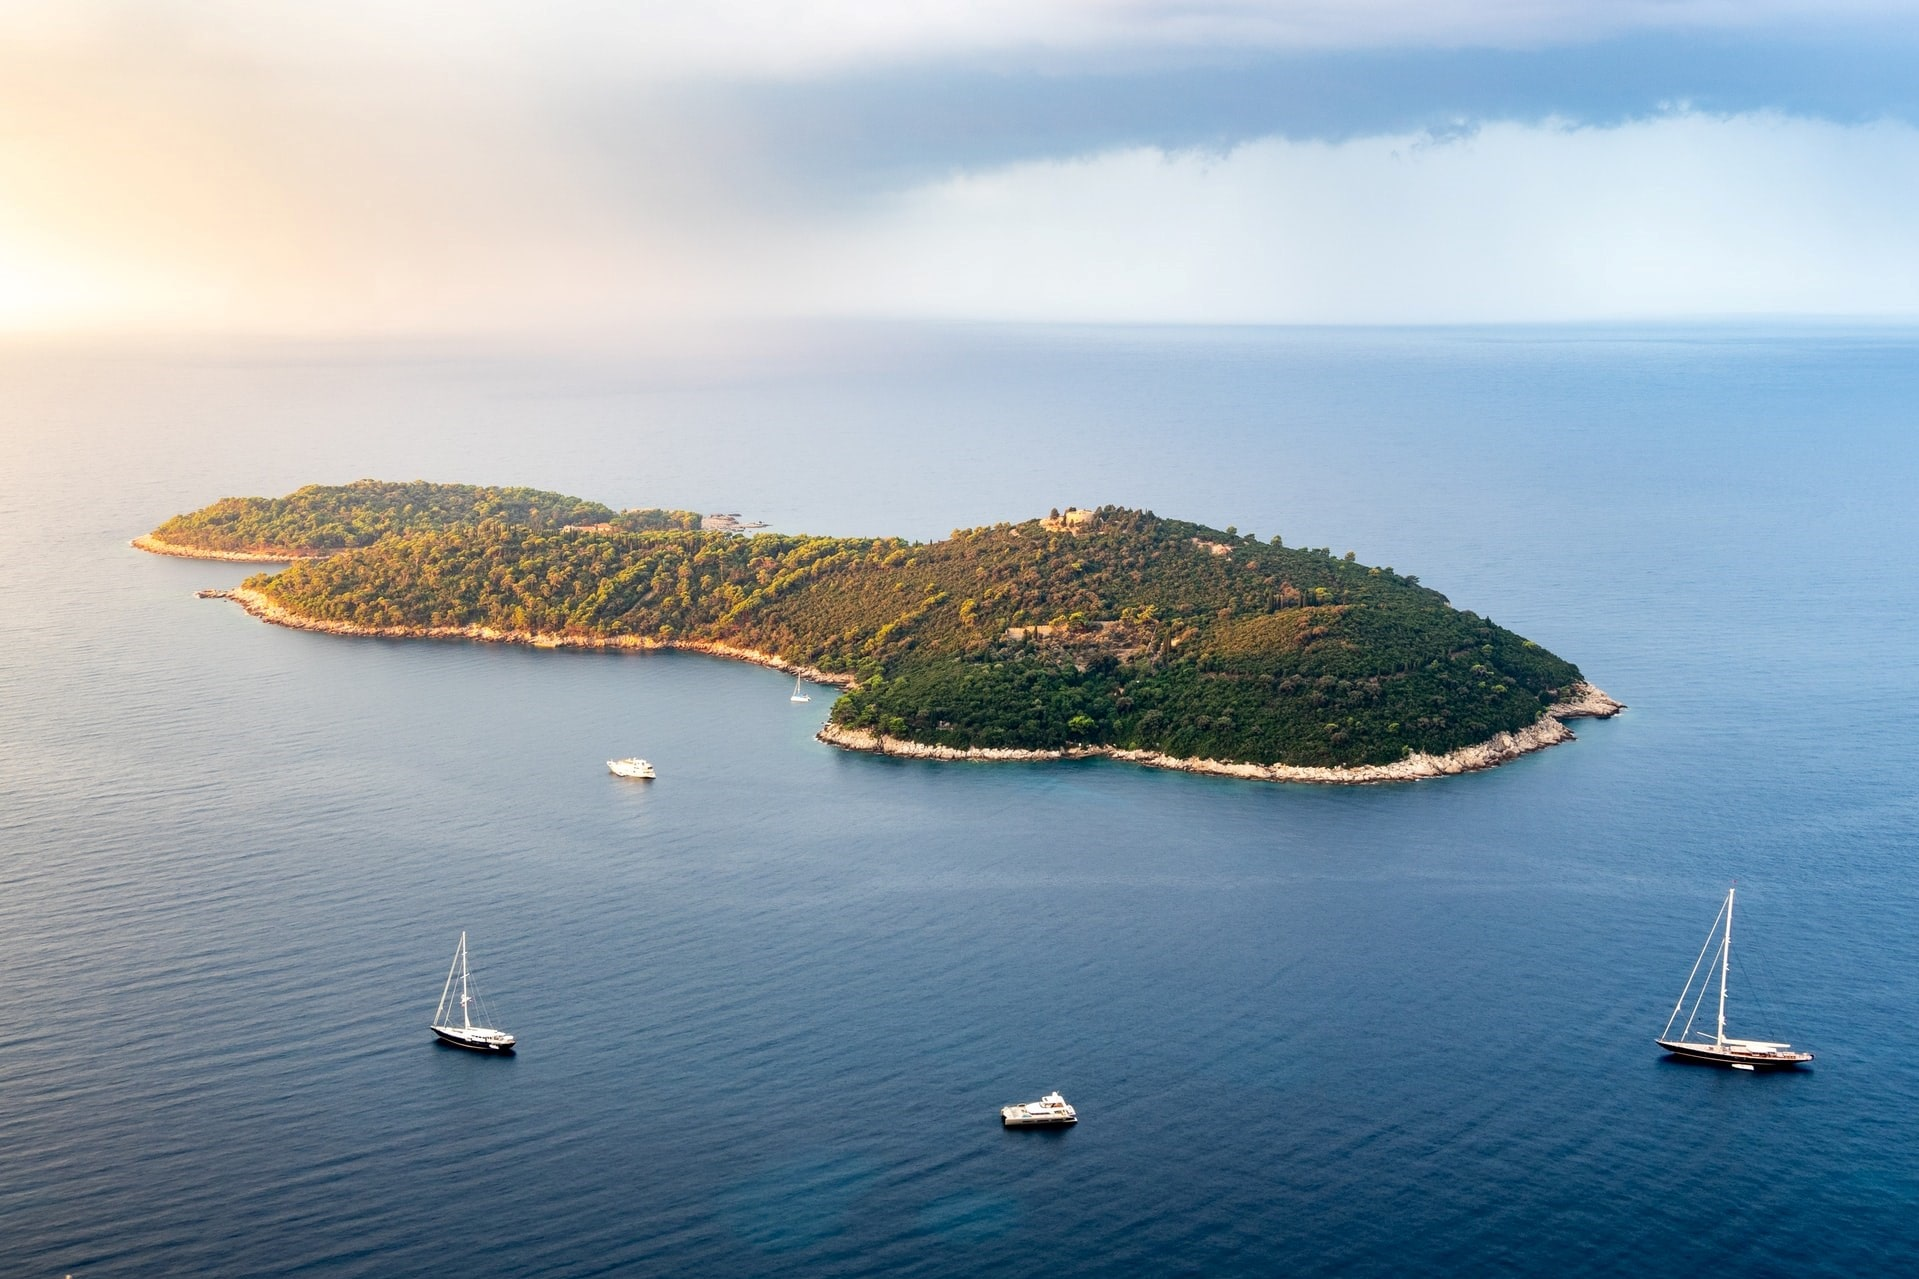 lokrum-island-in-blue-sea-surrounded-by-white-sailboats-at-sunset-3-days-in-dubrovnik-itinerary